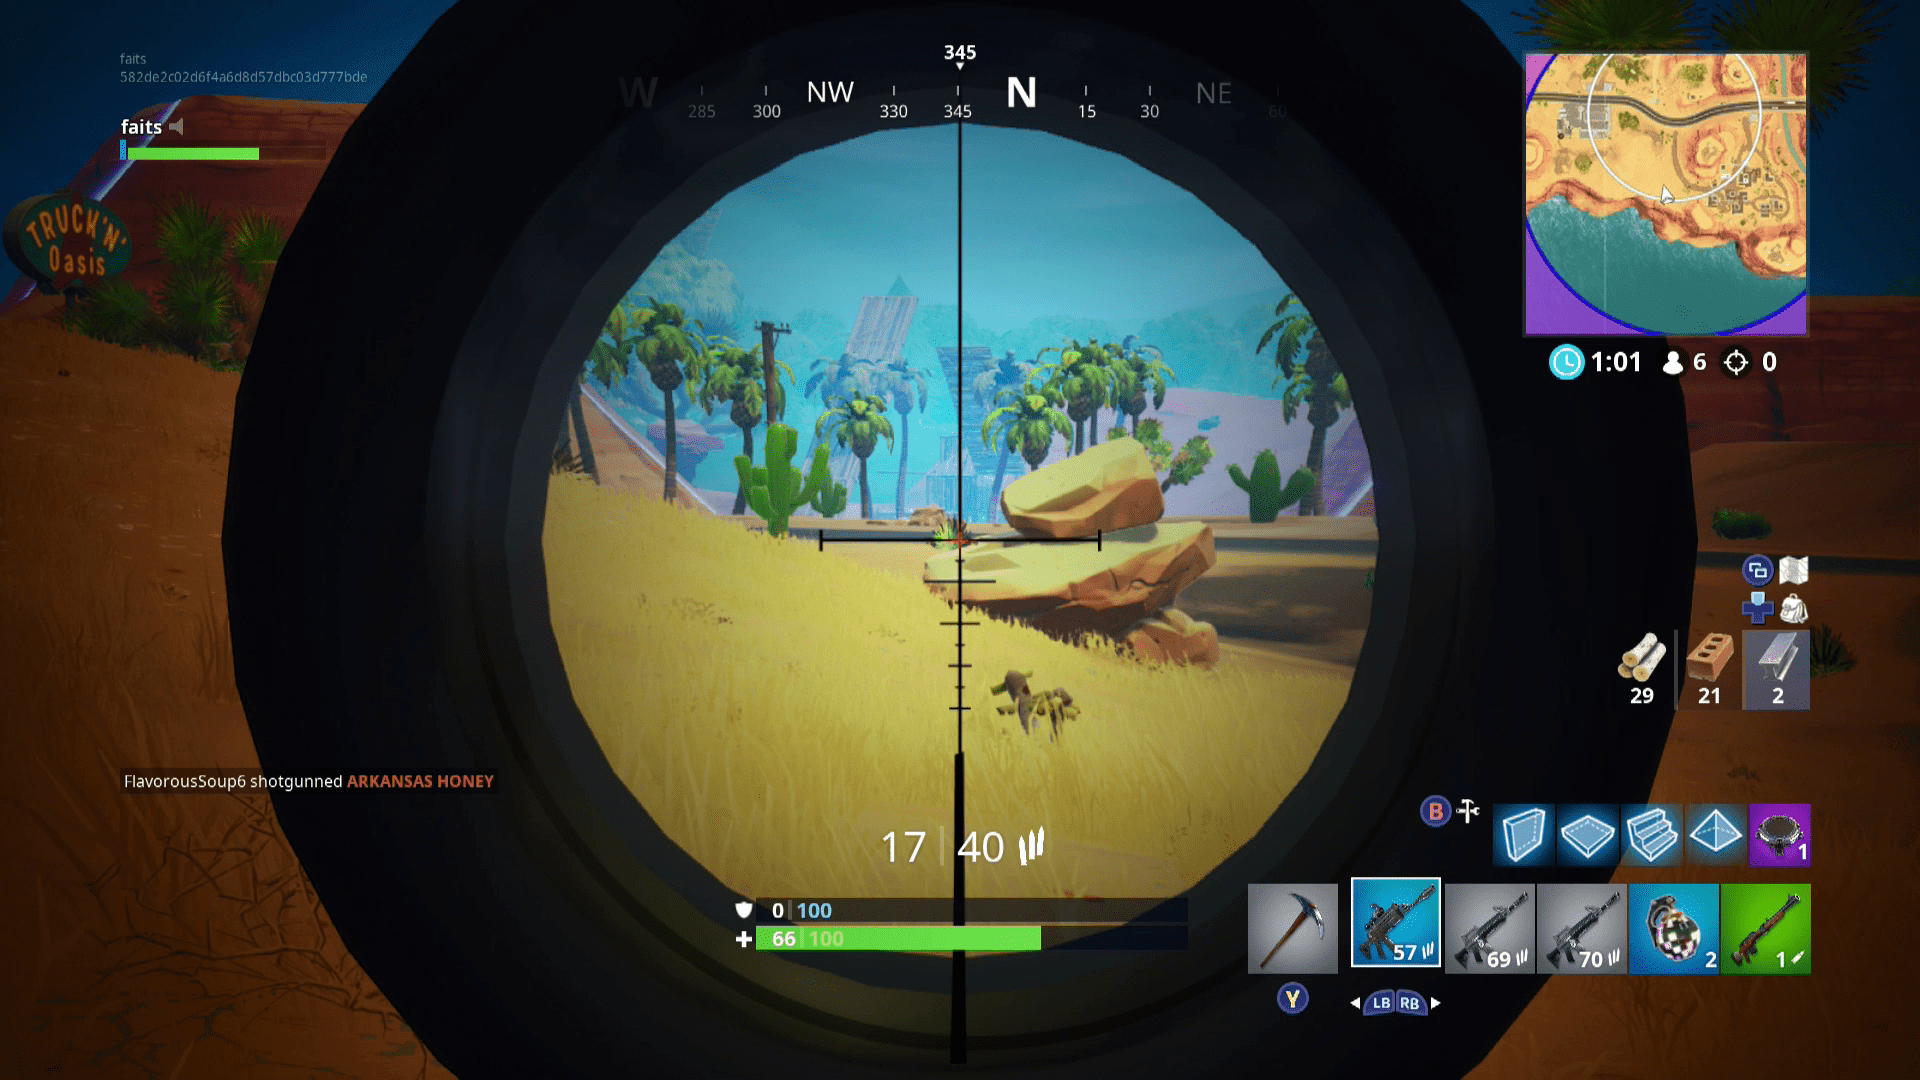 A screenshot of Fortnite showing a battlefield where other players are engaged.